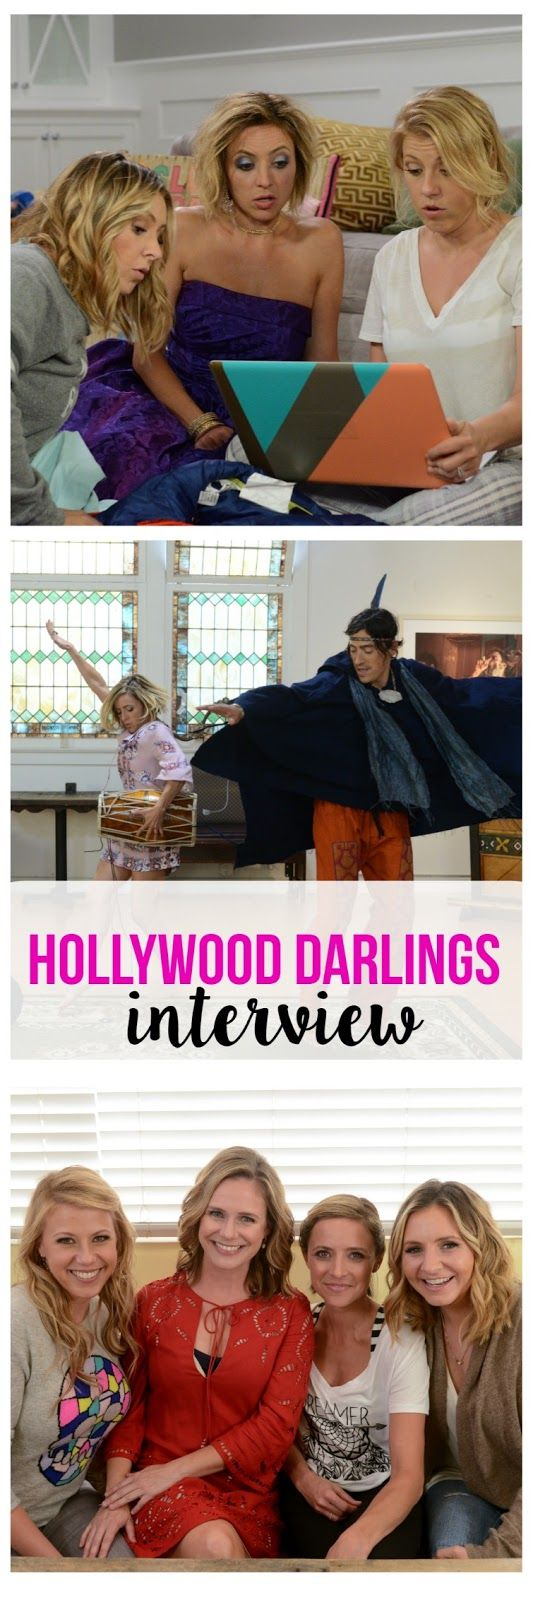 Hollywood Darlings: Interview with Christine Lakin, Beverley Mitchell & Jodie Sweetin